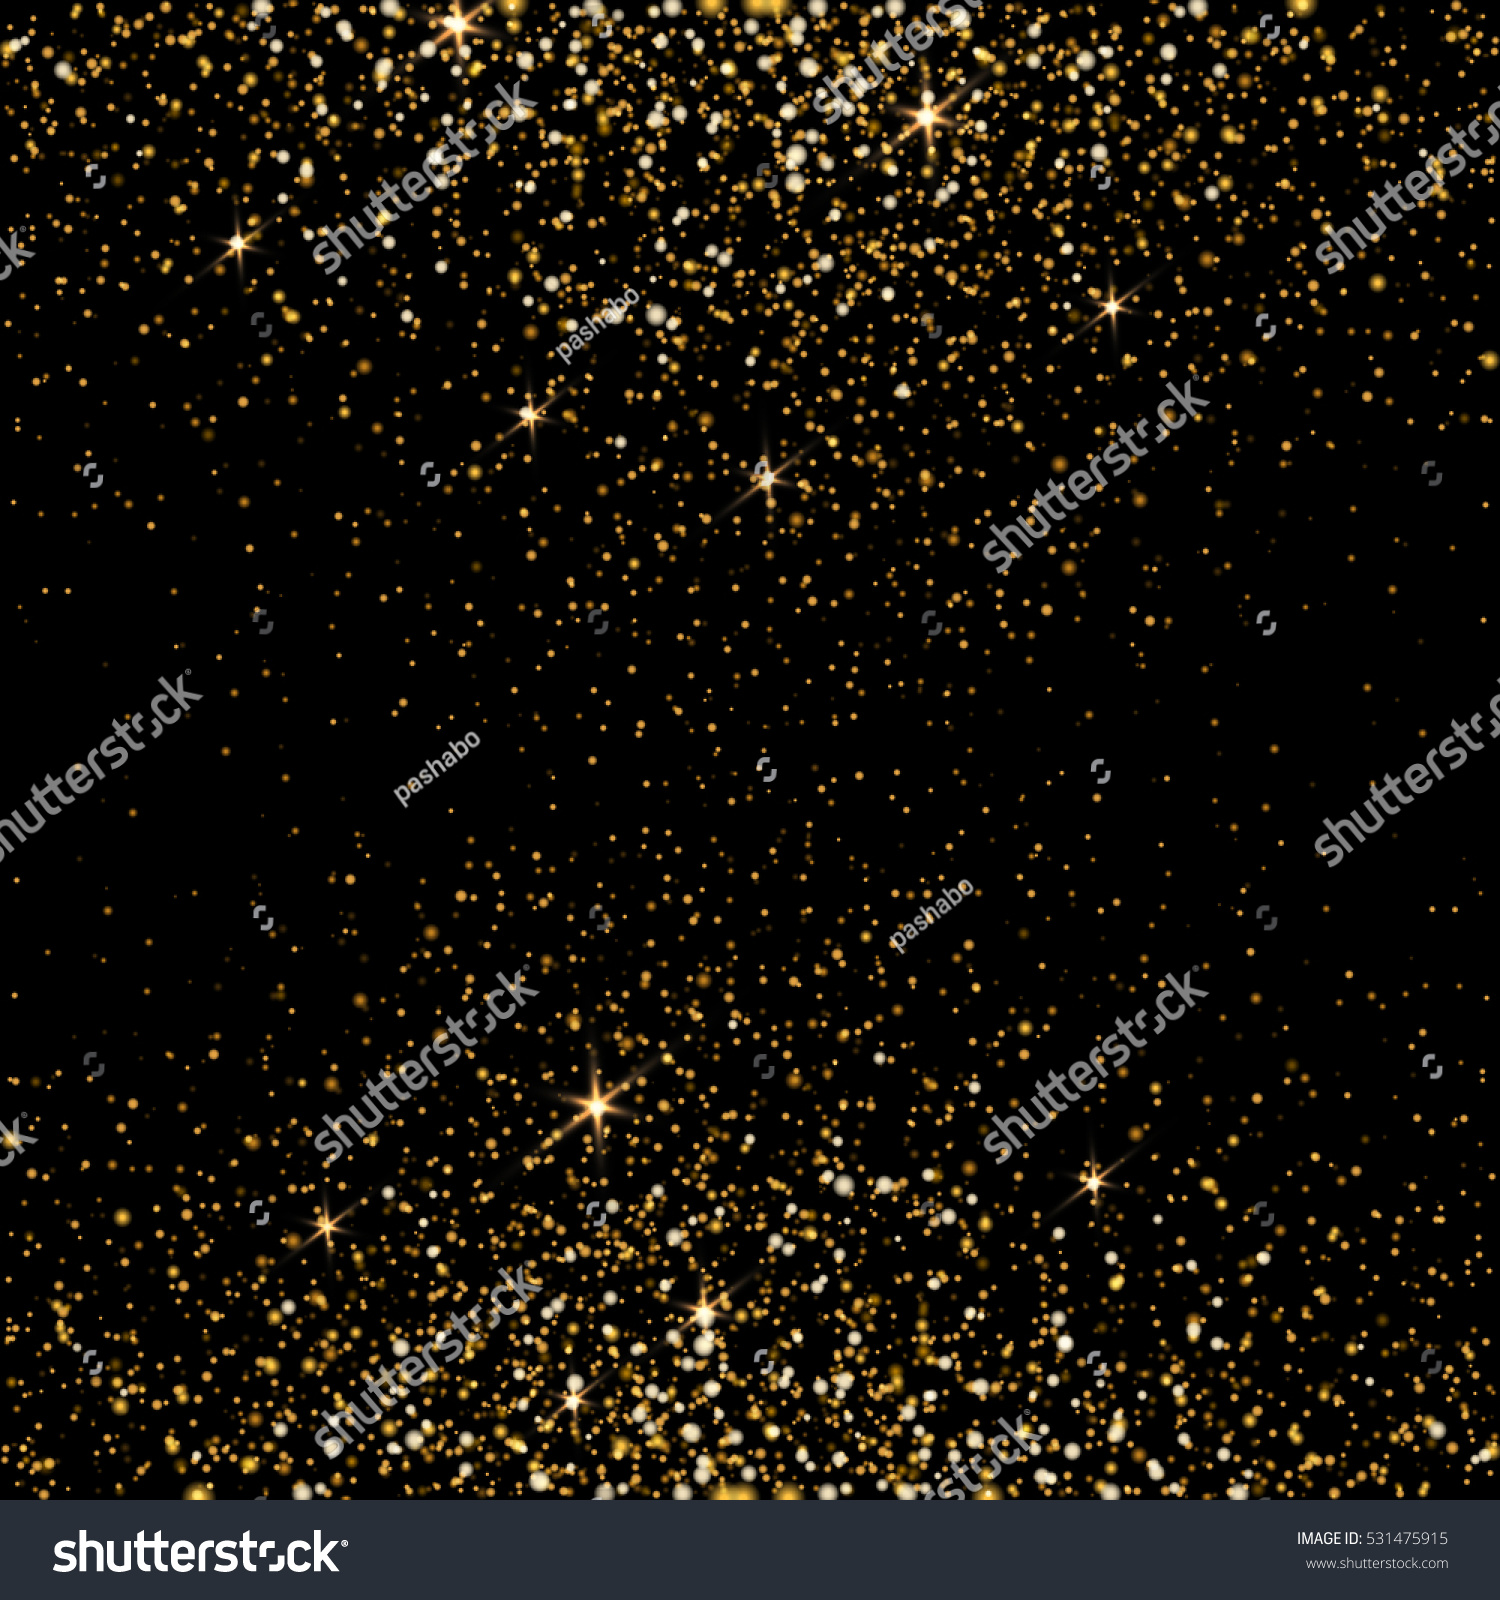 Gold glitter bright vector transparent background golden sparkles - Golden Light Effect Star Burst Light With Golden Sparkles Bokeh Defocused Background Vector